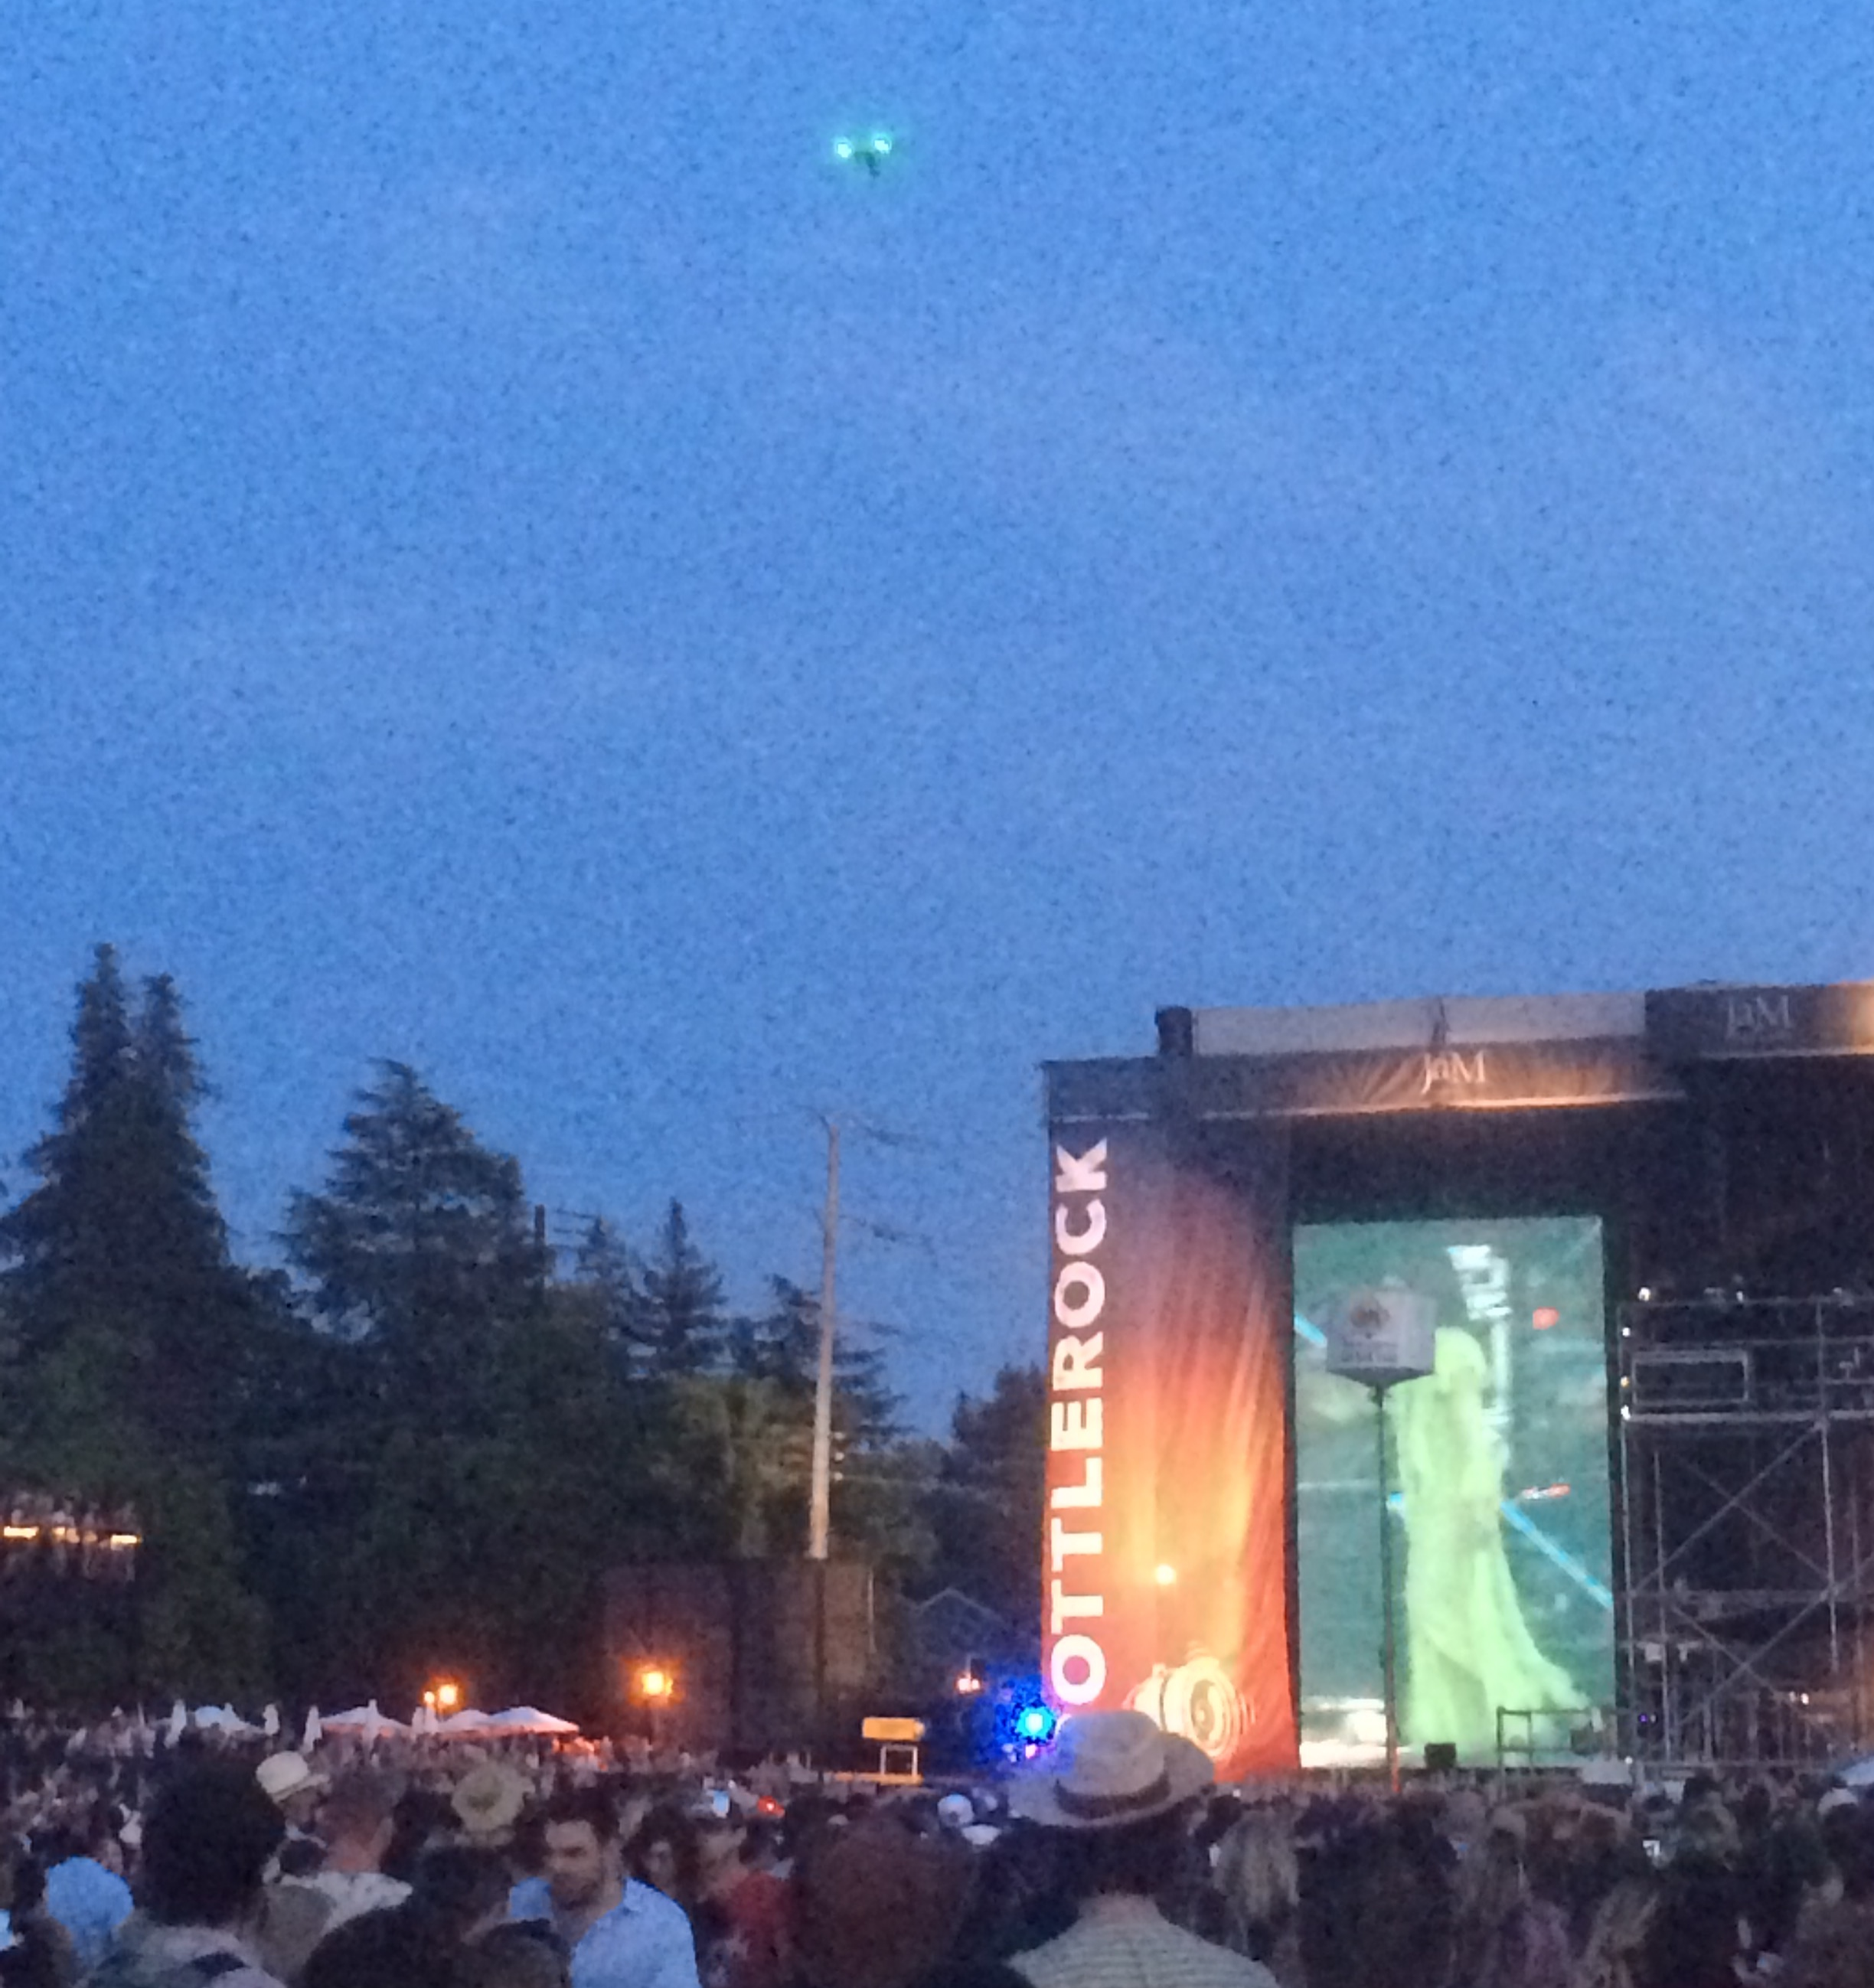 A DJI Inspire 1 V5 seen above the crowds of the BottleRock Festival on May 28, 2016.